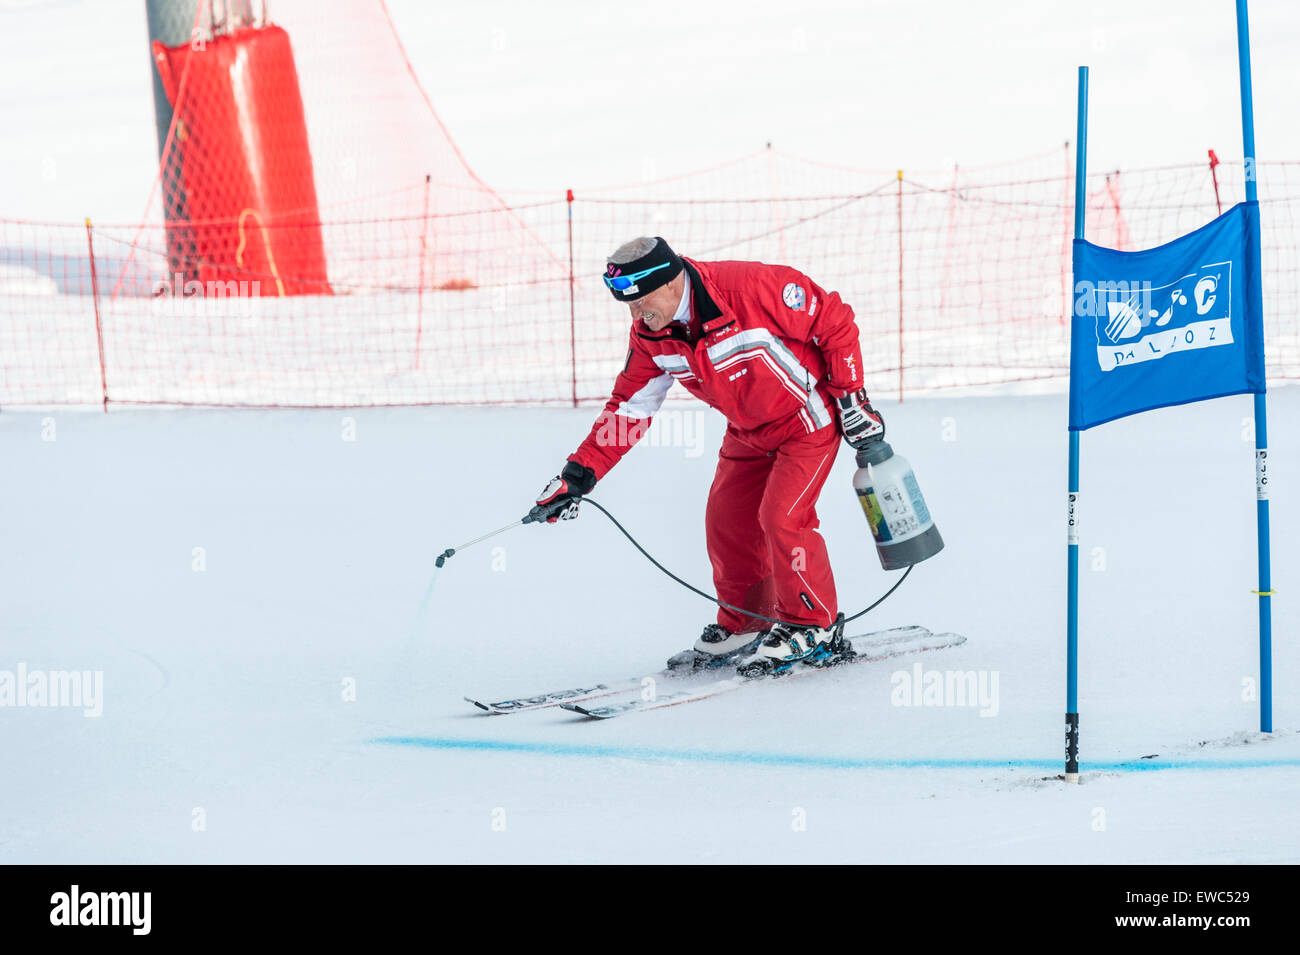 A course marshal marking the ski piste with blue dye, at a giant slalom race gate, before a race begins. - Stock Image